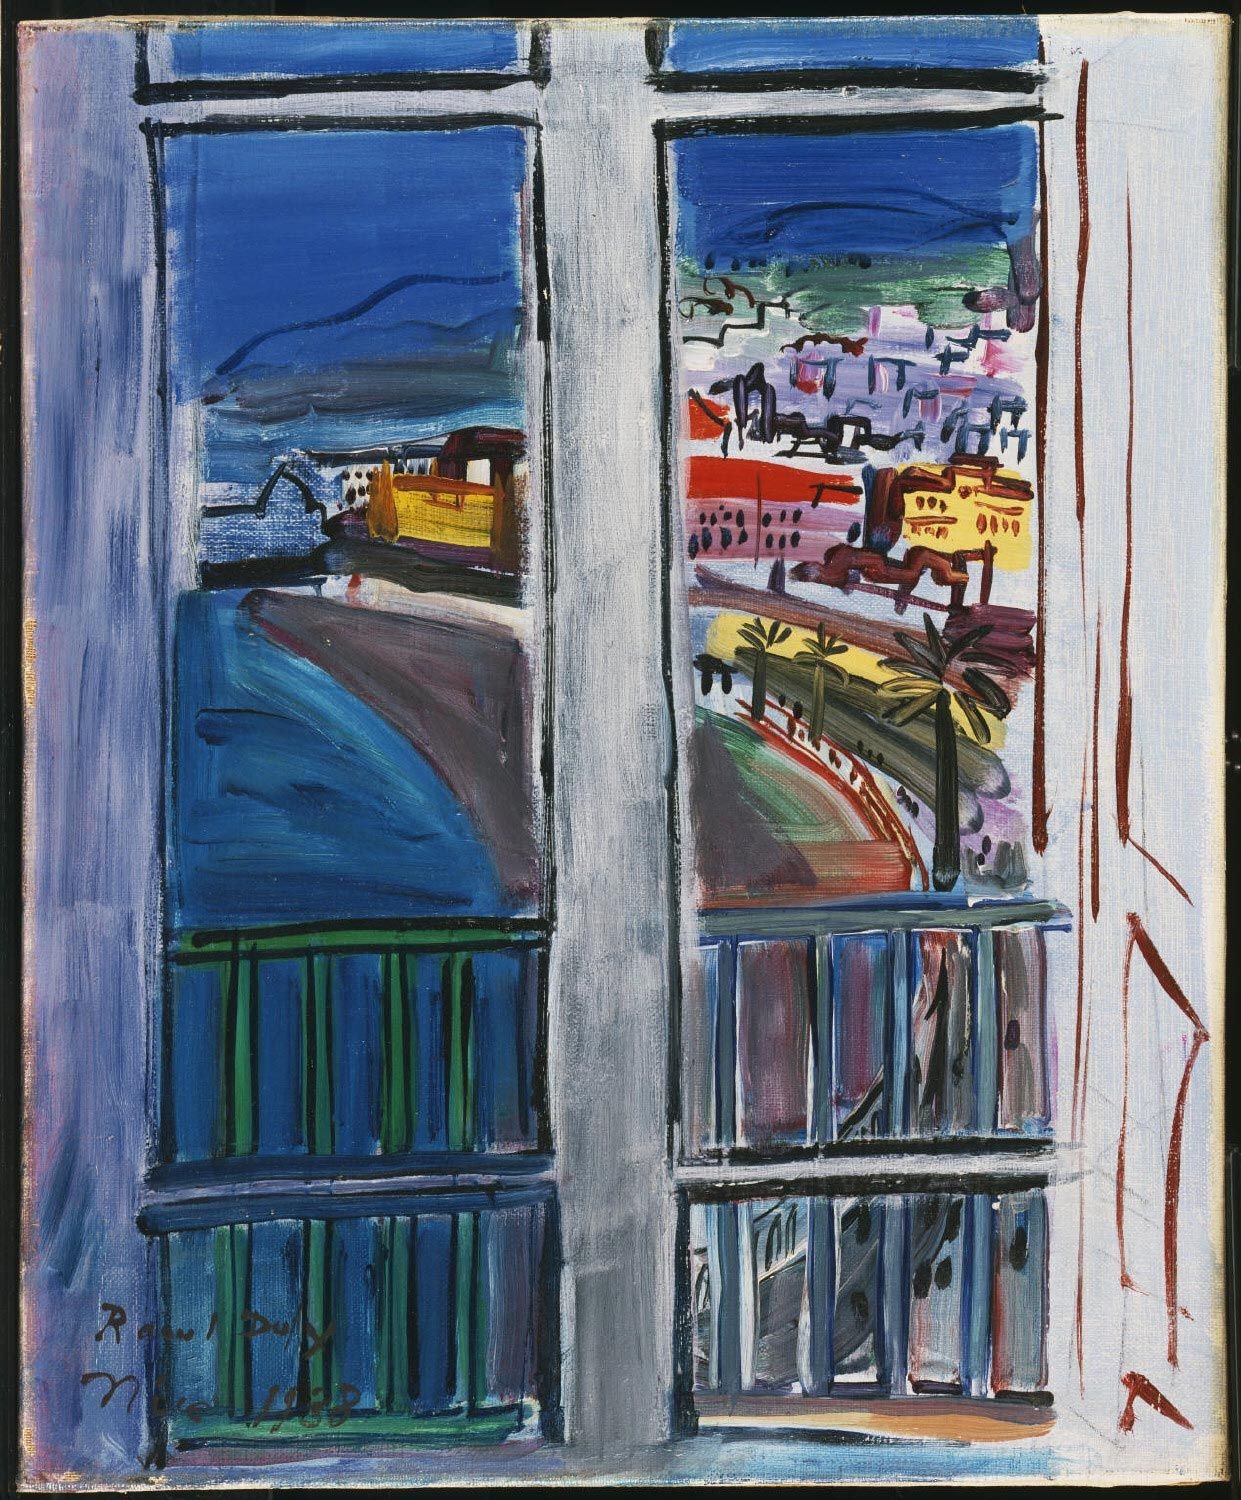 Philadelphia Museum of Art - Collections Object : Window on the Promenade des Anglais, Nice